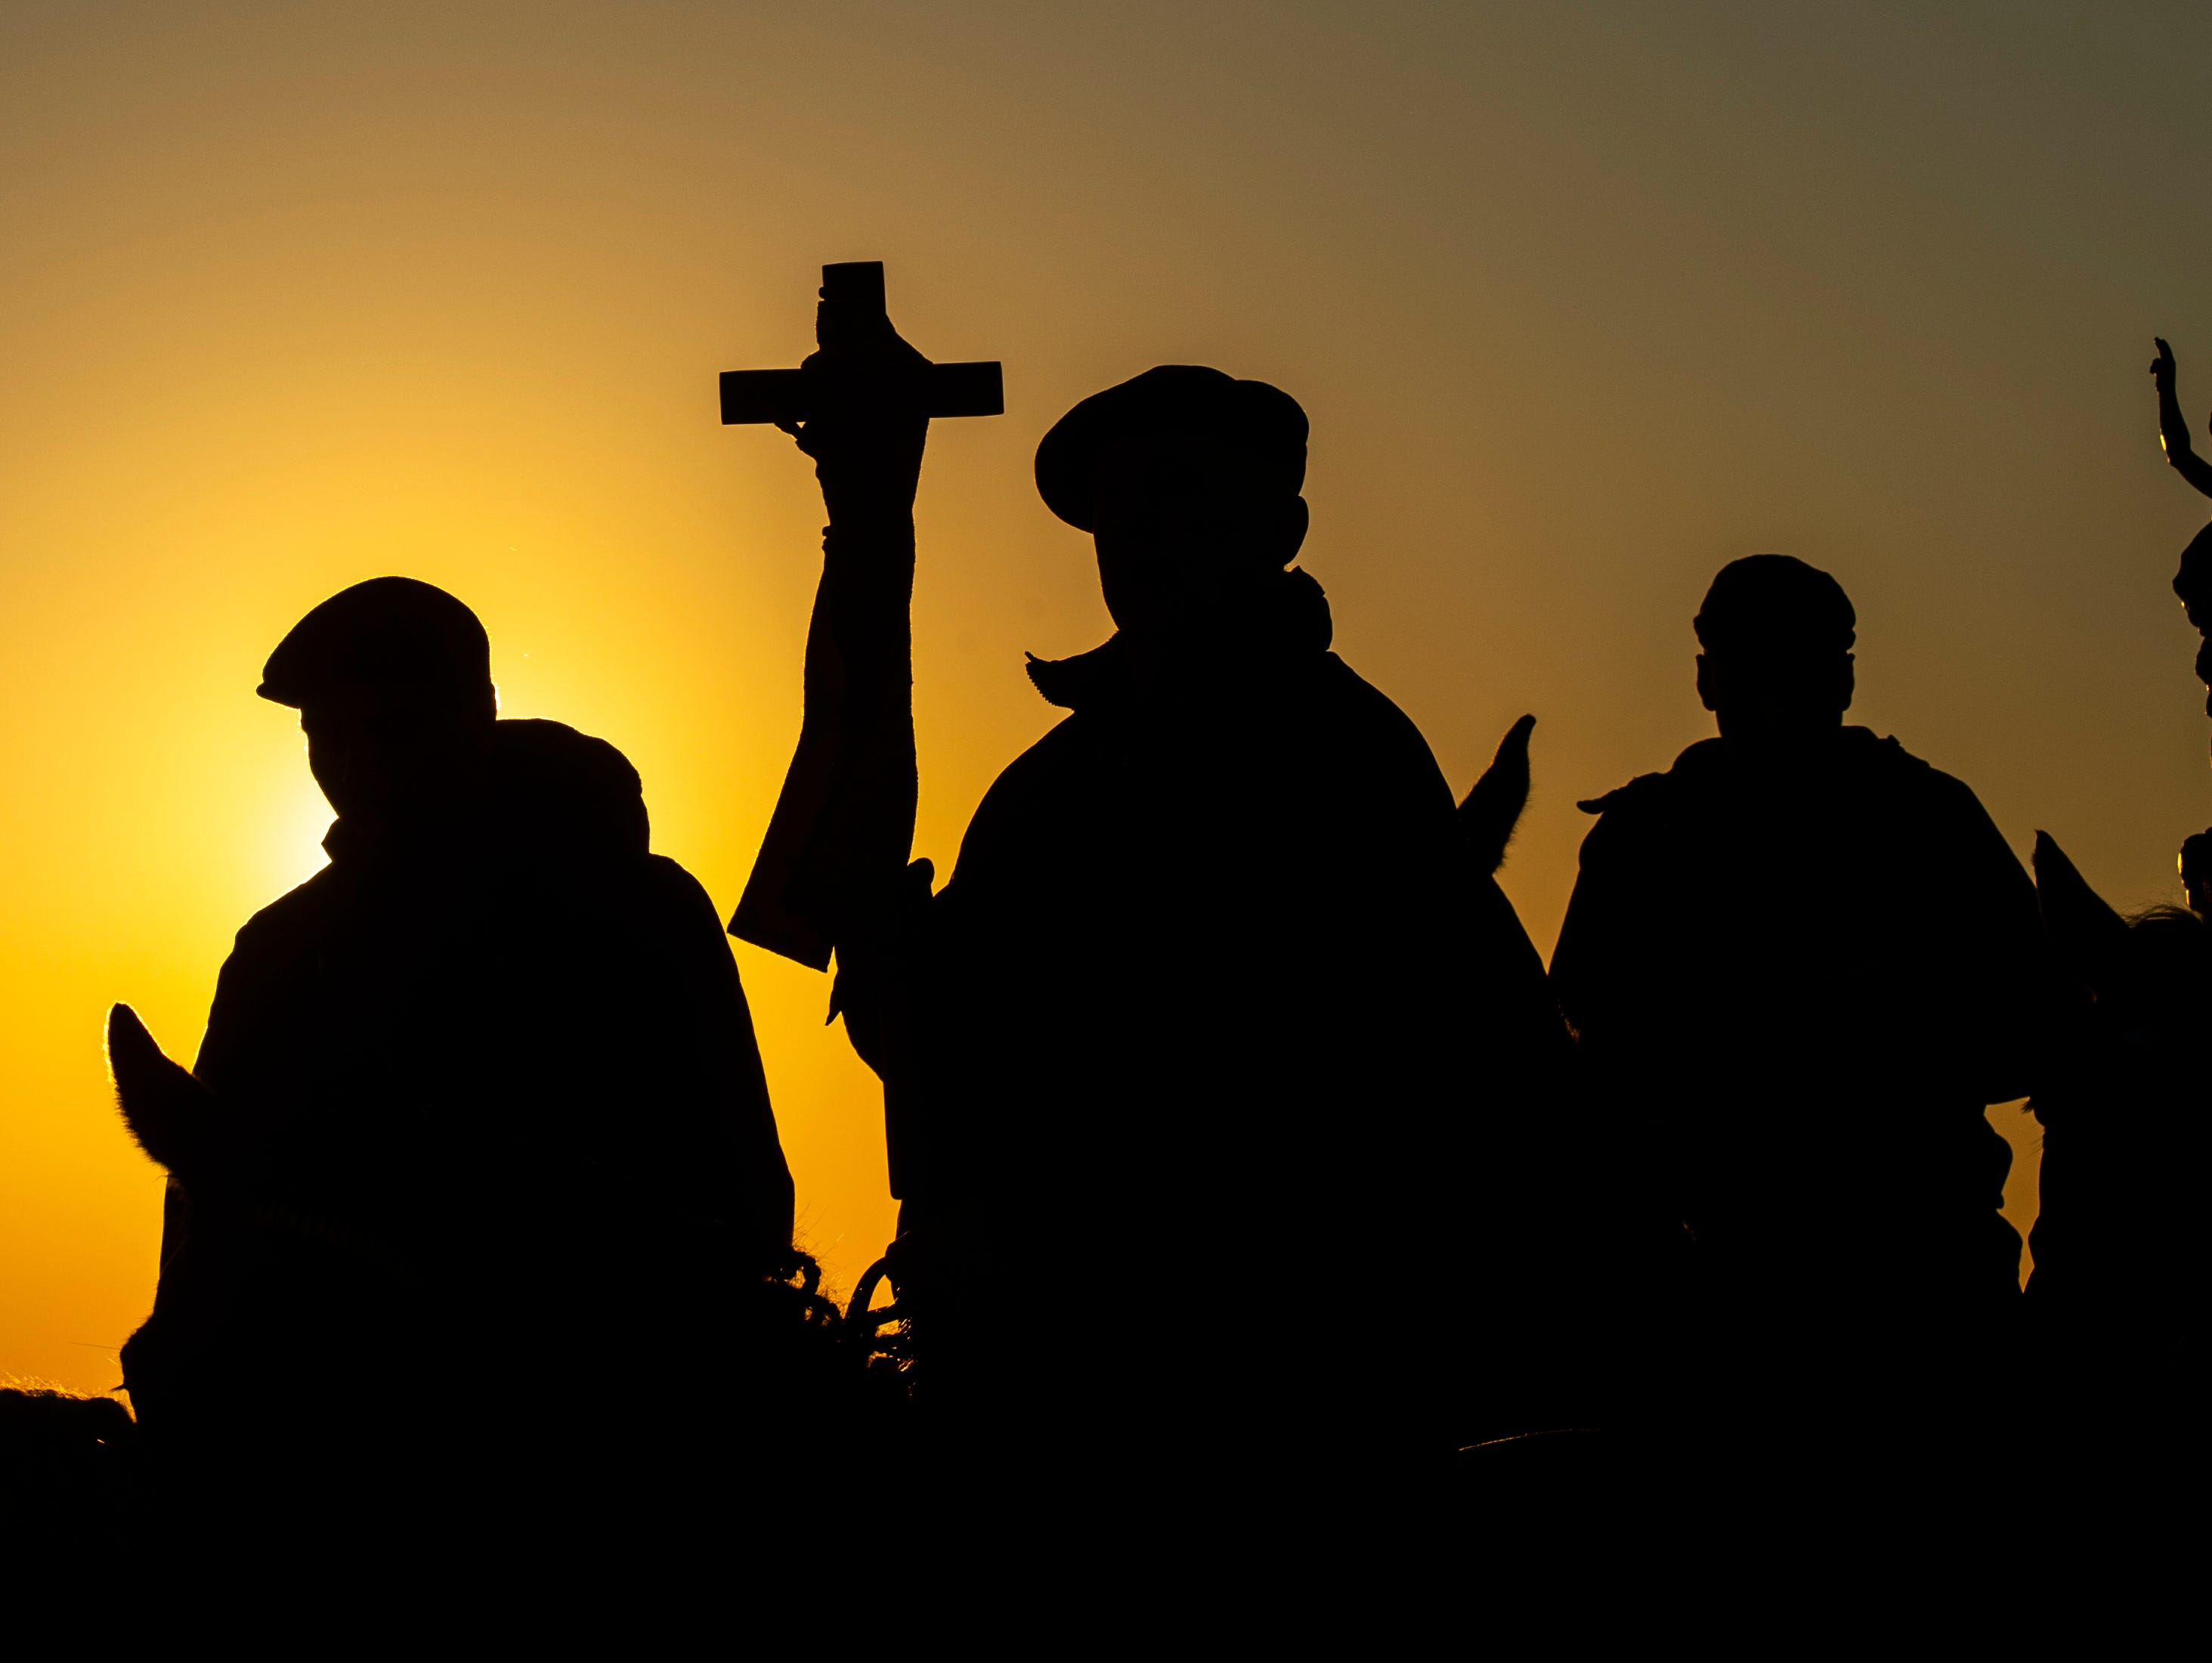 Men carry the cross and a figure at the day's first procession, the so called 'Seed riding' during the sunset at the Easter riders processions in Ostro, eastern Germany, Sunday, April 21, 2019. According to a more than hundred years old tradition men of the Sorbs, dressed in black tailcoats ride on decorated horses, proclaiming, singing and praying the message of Jesus' resurrection. The Sorbs are a Slavic German minority located near the German-Polish border.